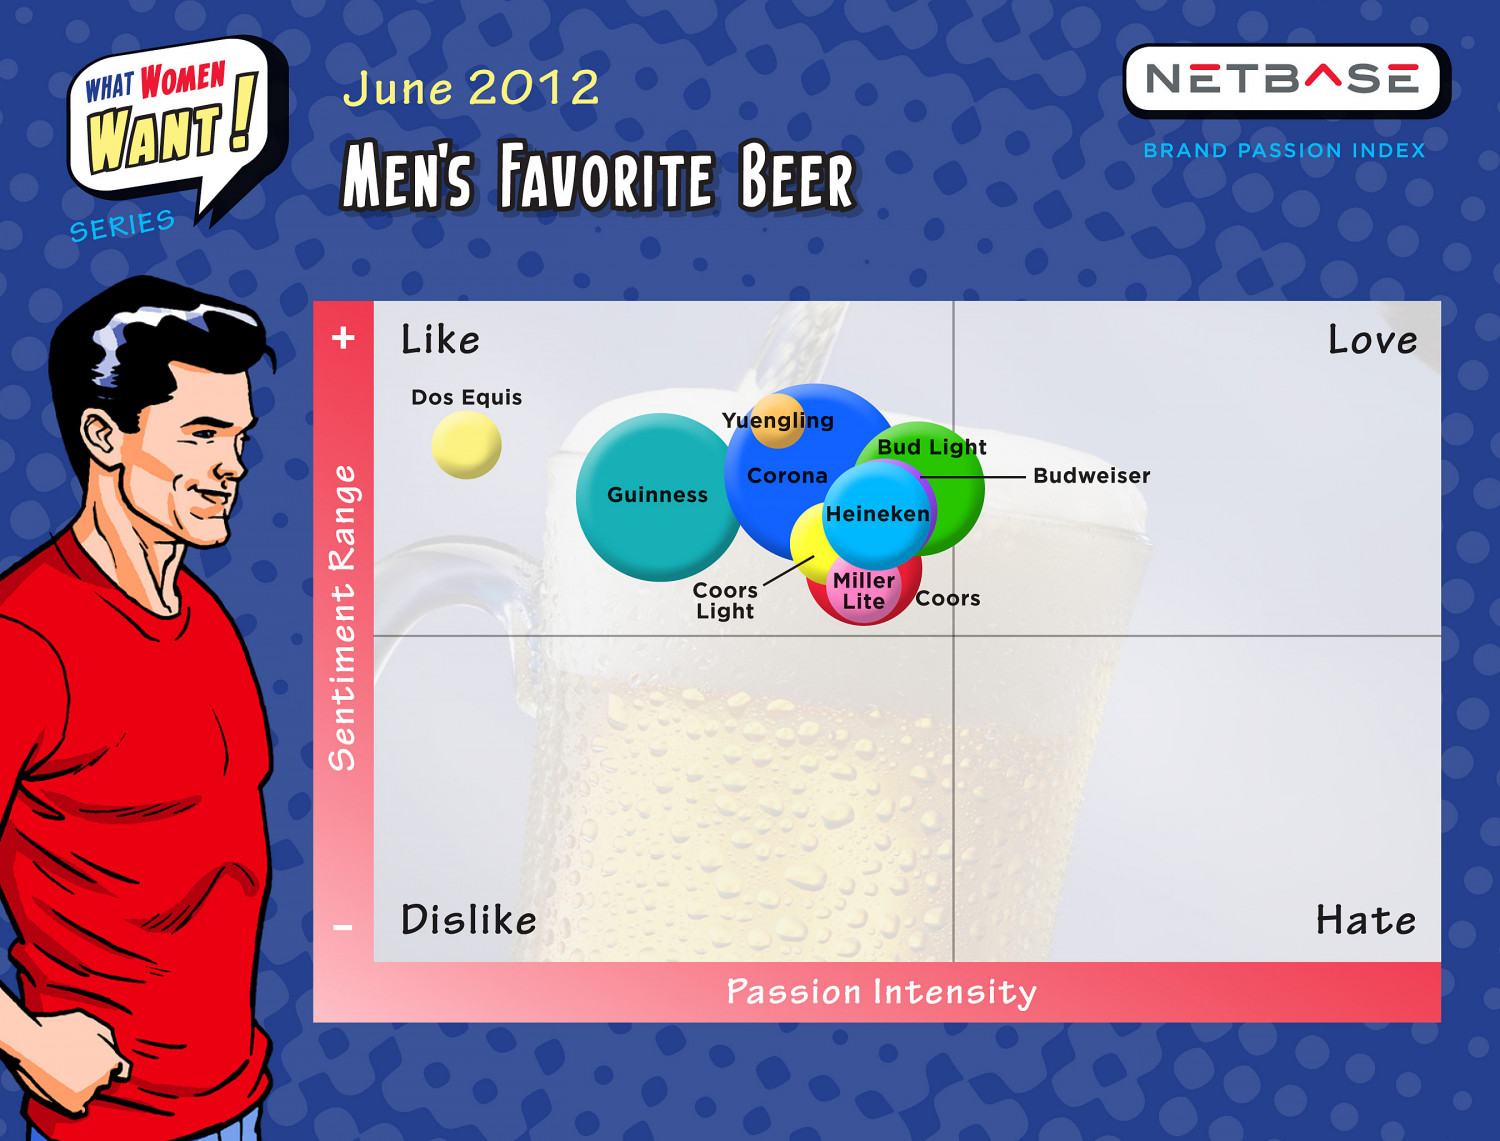 What Men Want - Beer Infographic